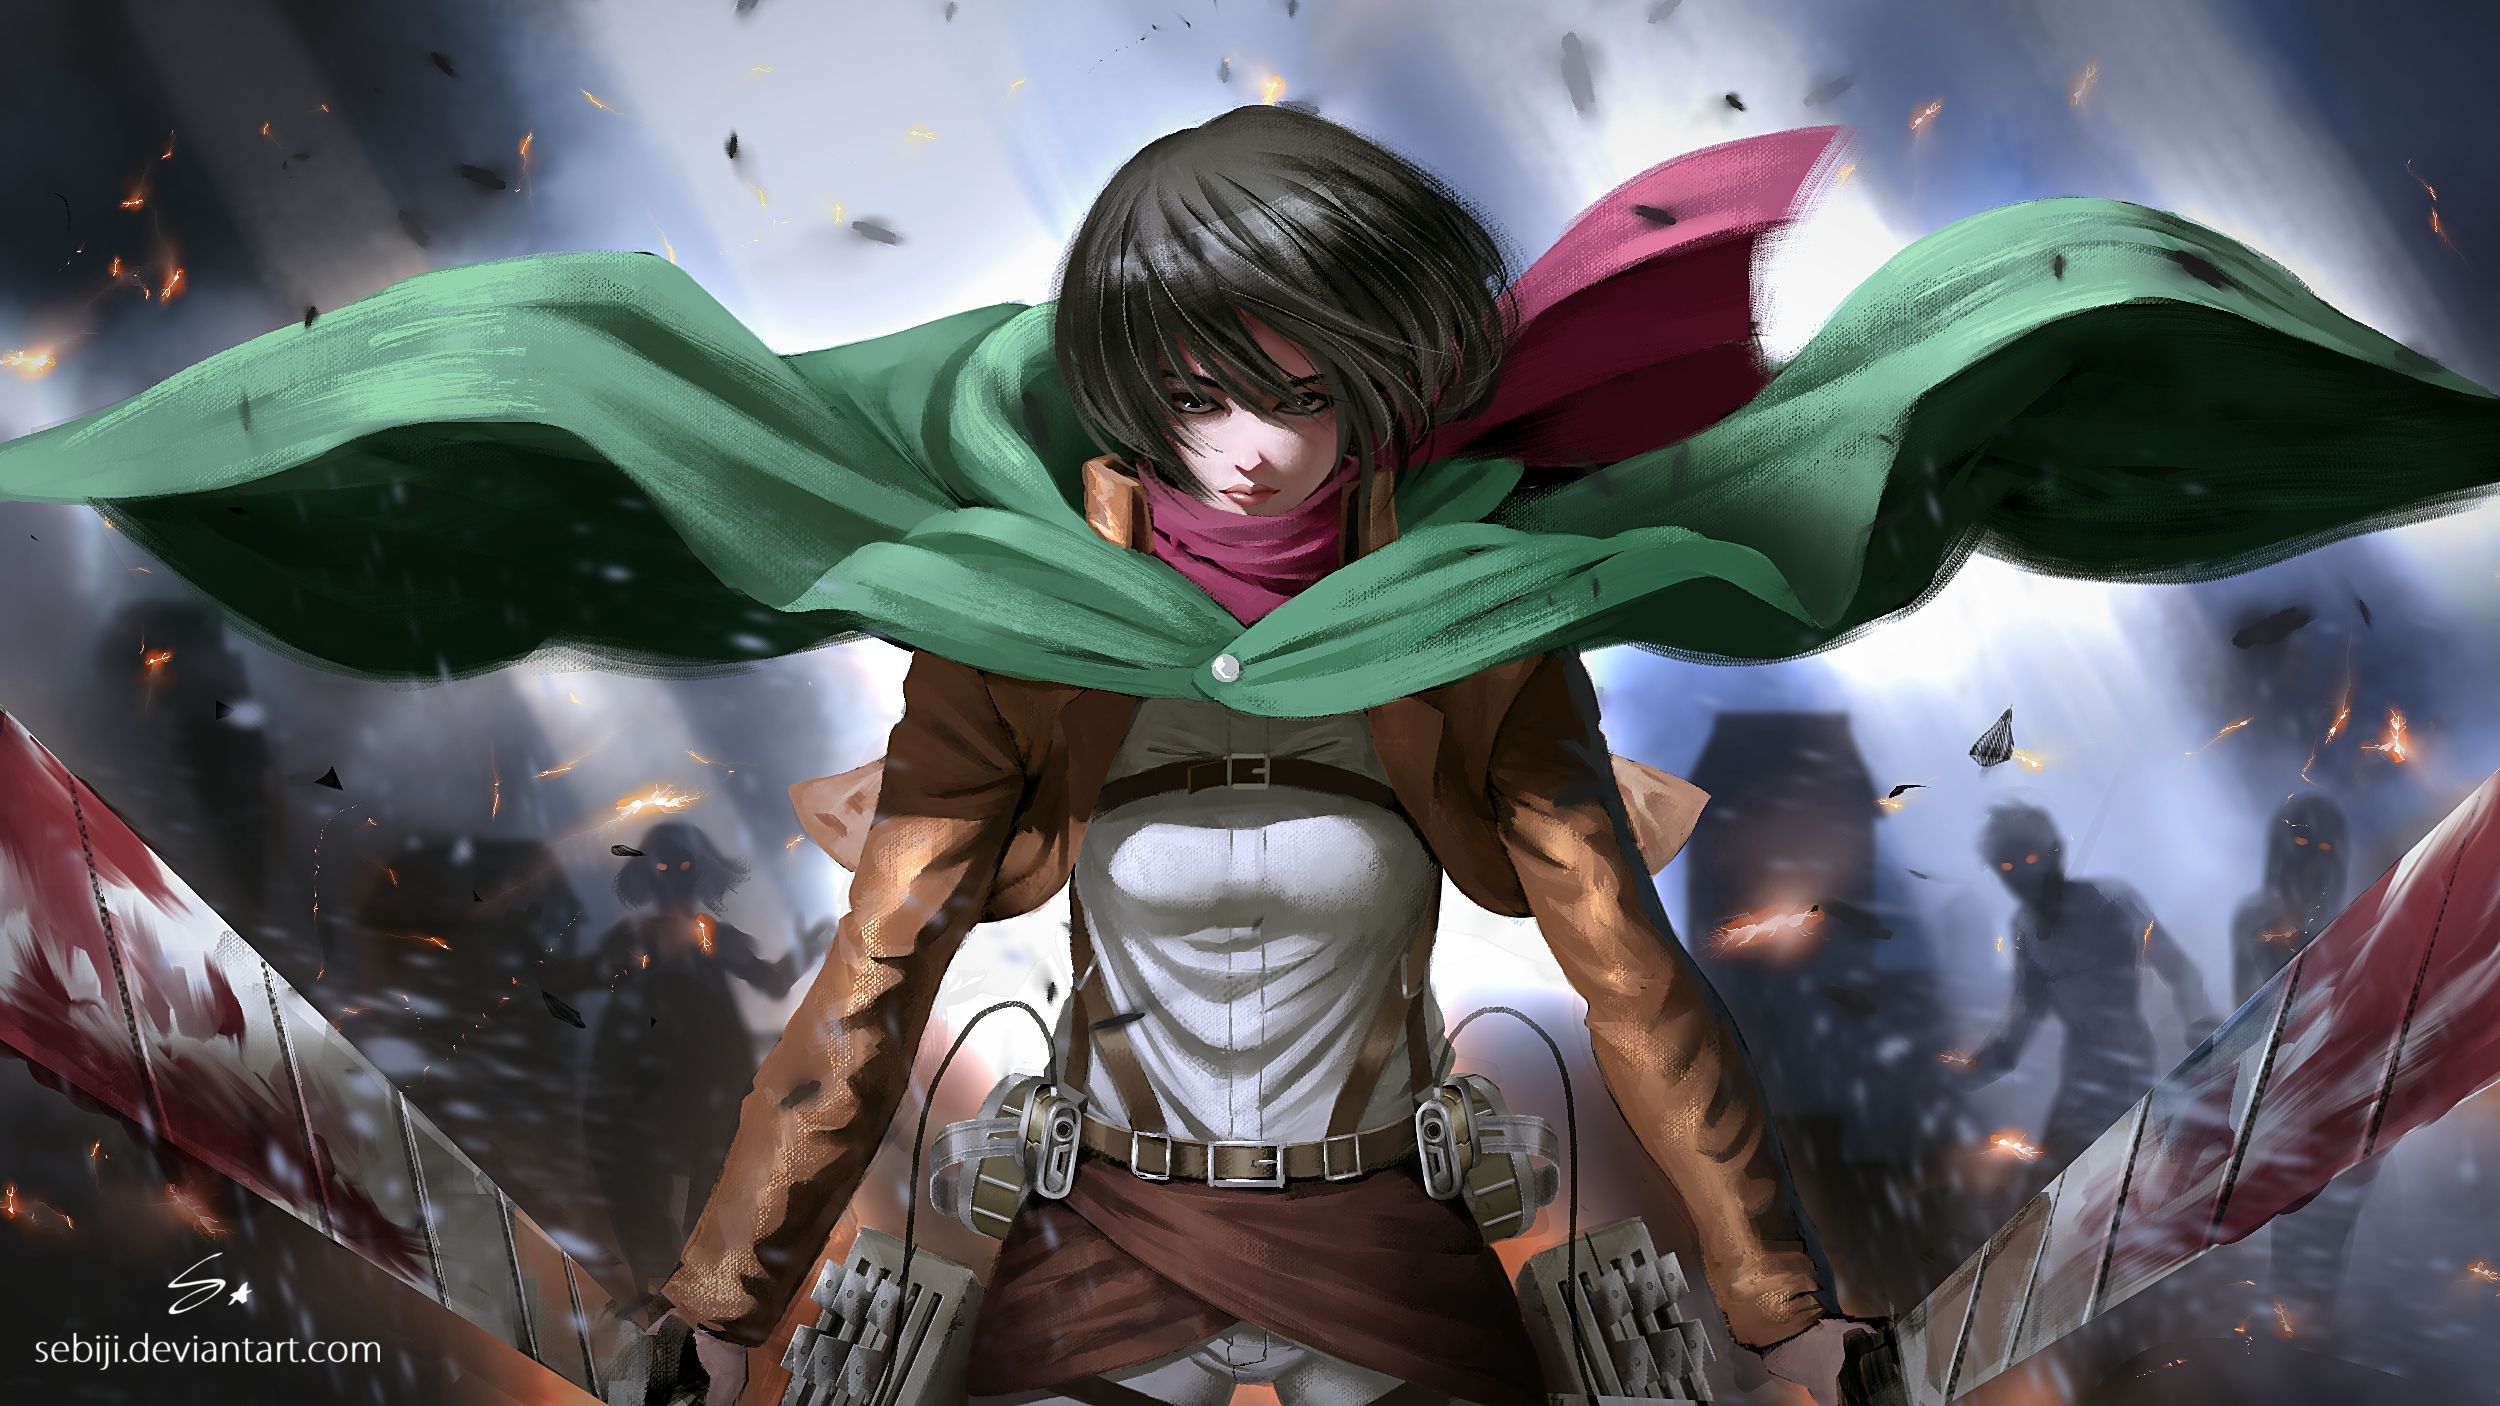 Anime Attack On Titan Mikasa Ackerman Hd Wallpaper 2500x1406 Attack On Titan Fanart Anime Attack On Titan Art